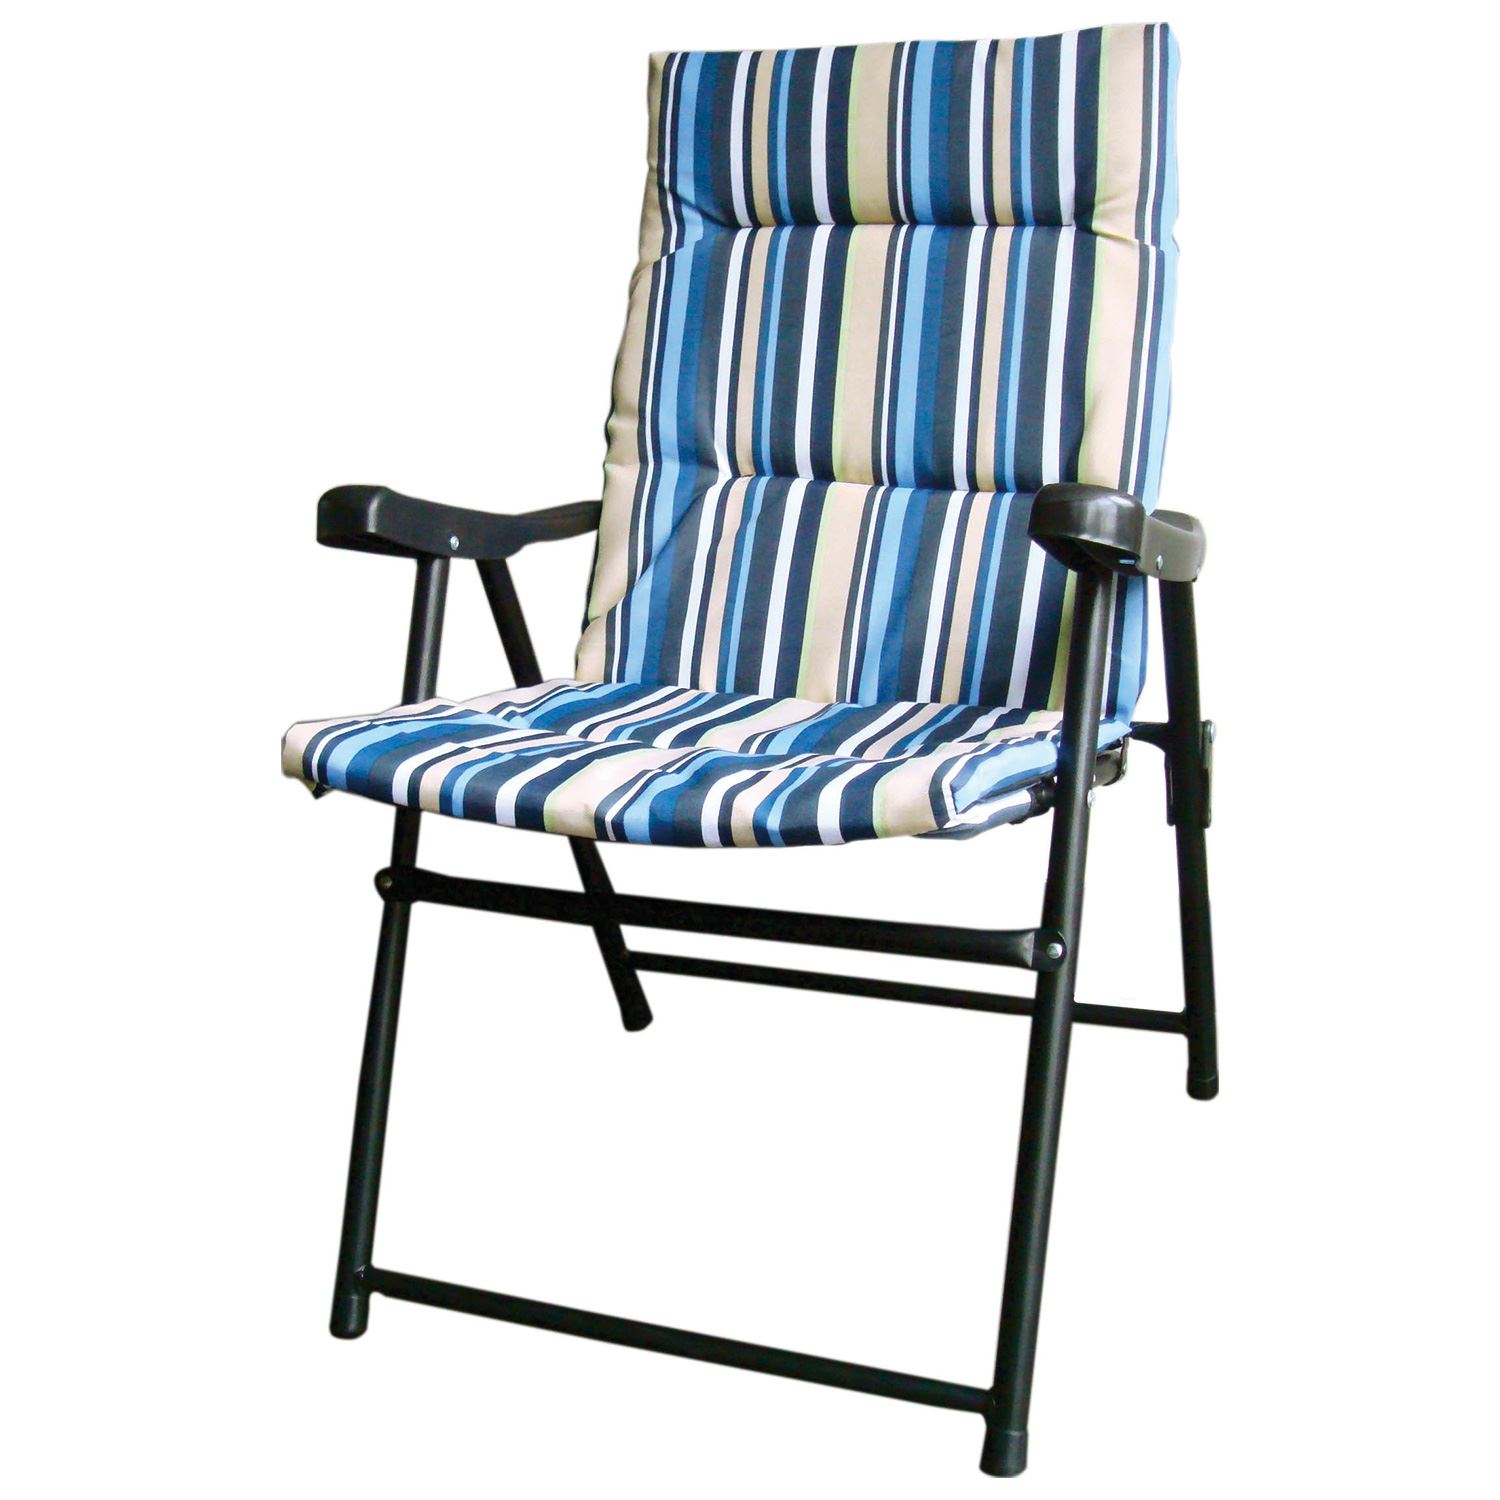 Upholstered Folding Chairs New Padded Folding Outdoor Garden Camping Picnic Chair